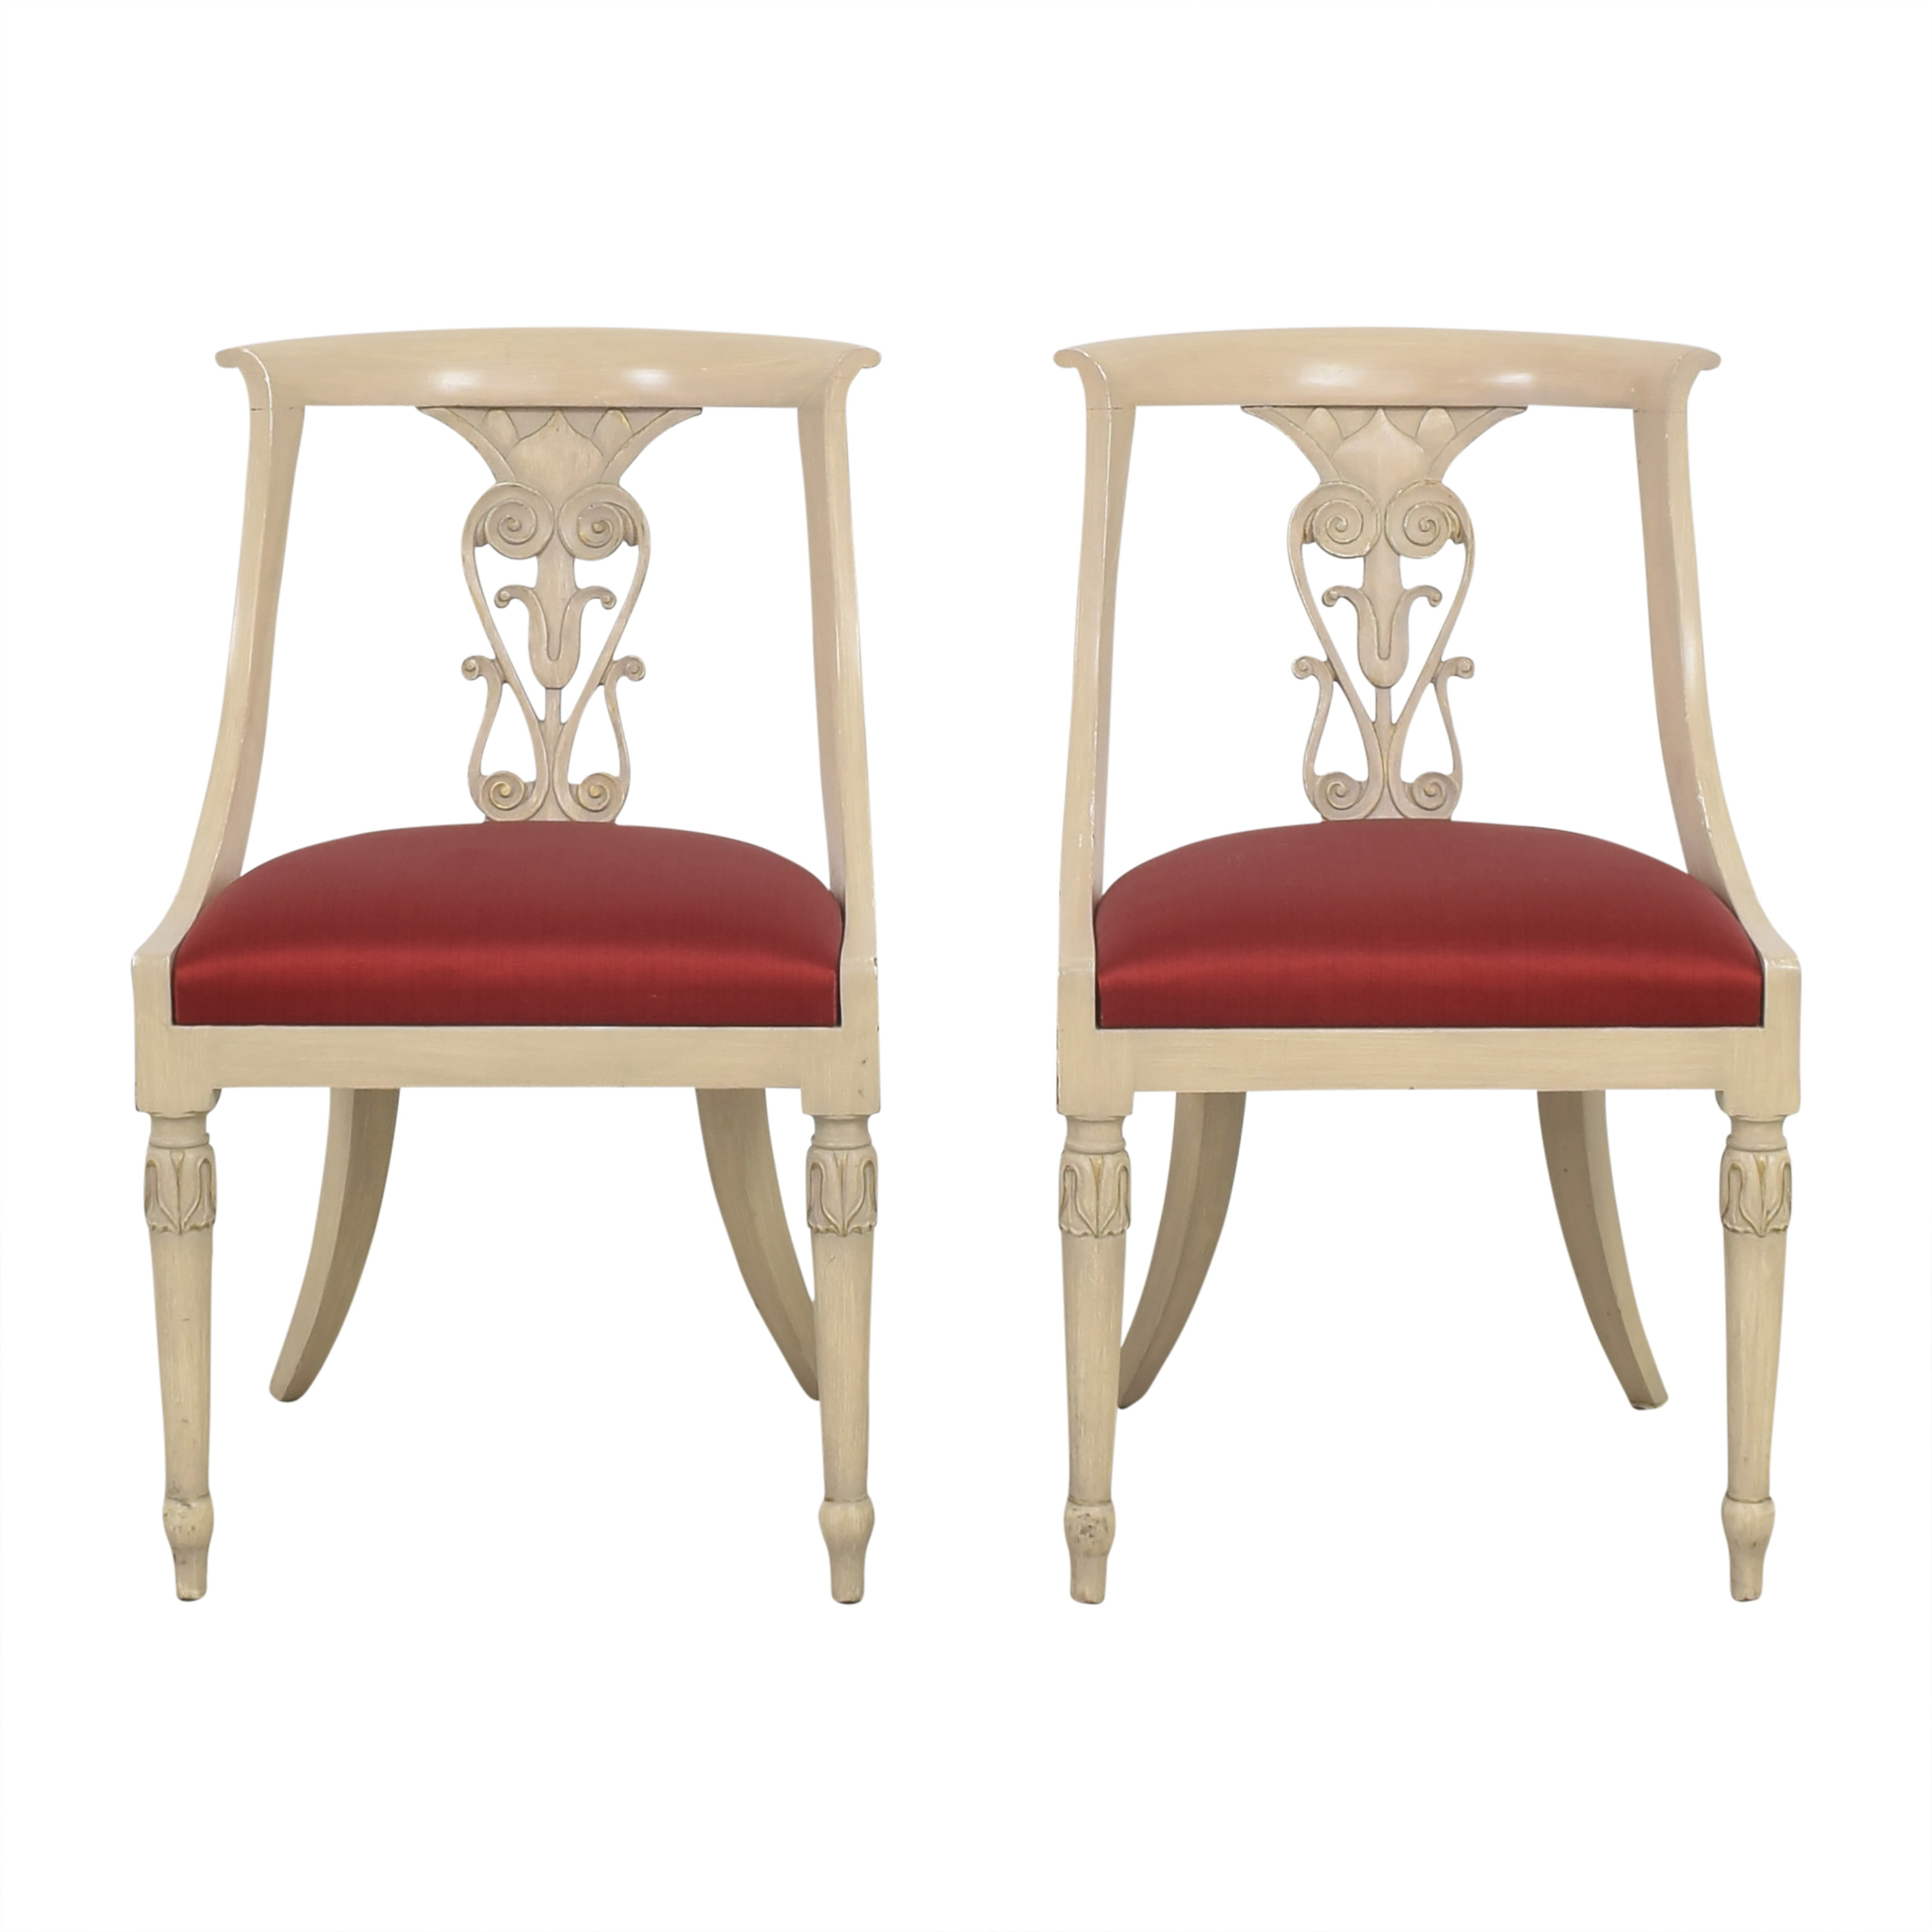 buy Decorative Upholstered Dining Chairs  Dining Chairs